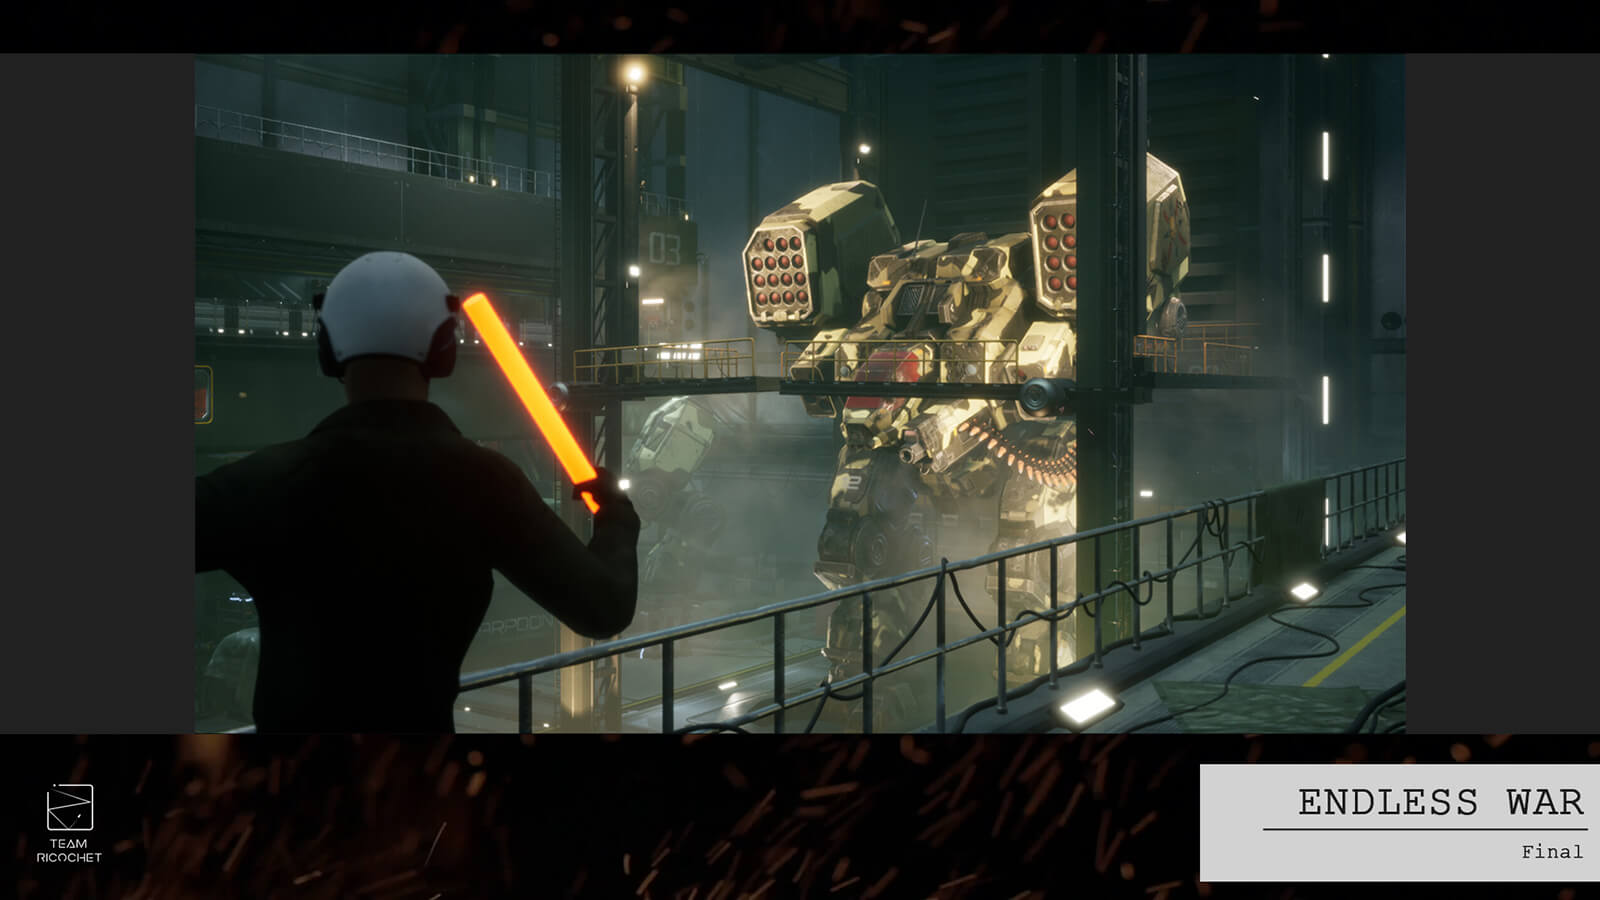 A man signals an armored battle mech with a glowing stick in an industrial-style hangar.